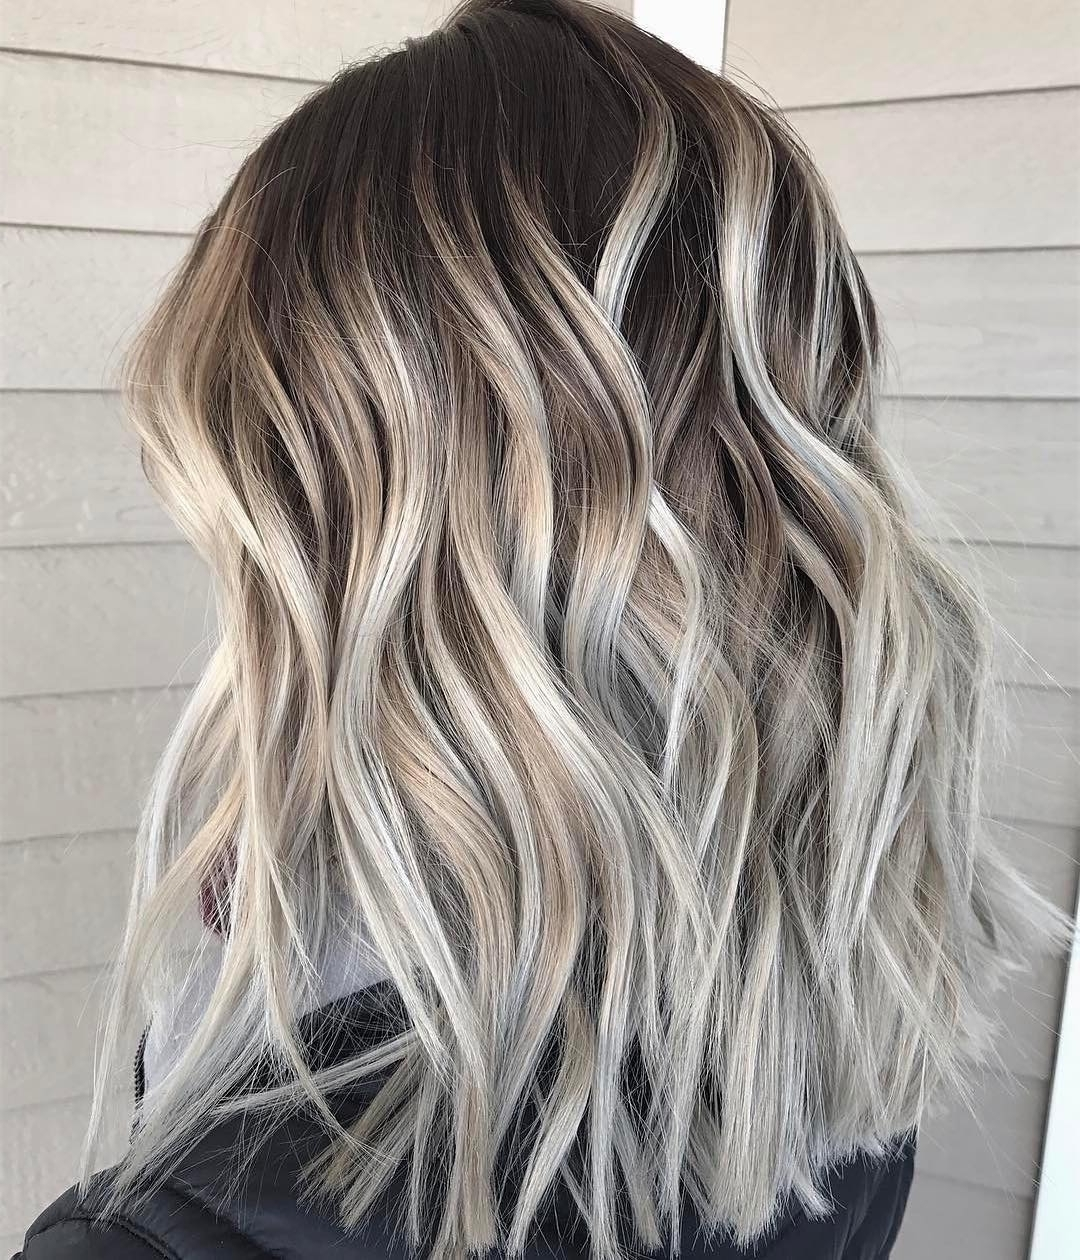 10 Best Medium Hairstyles For Women – Shoulder Length Hair Cuts 2018 Intended For Most Recently Released Dark Roots And Icy Cool Ends Blonde Hairstyles (View 13 of 20)